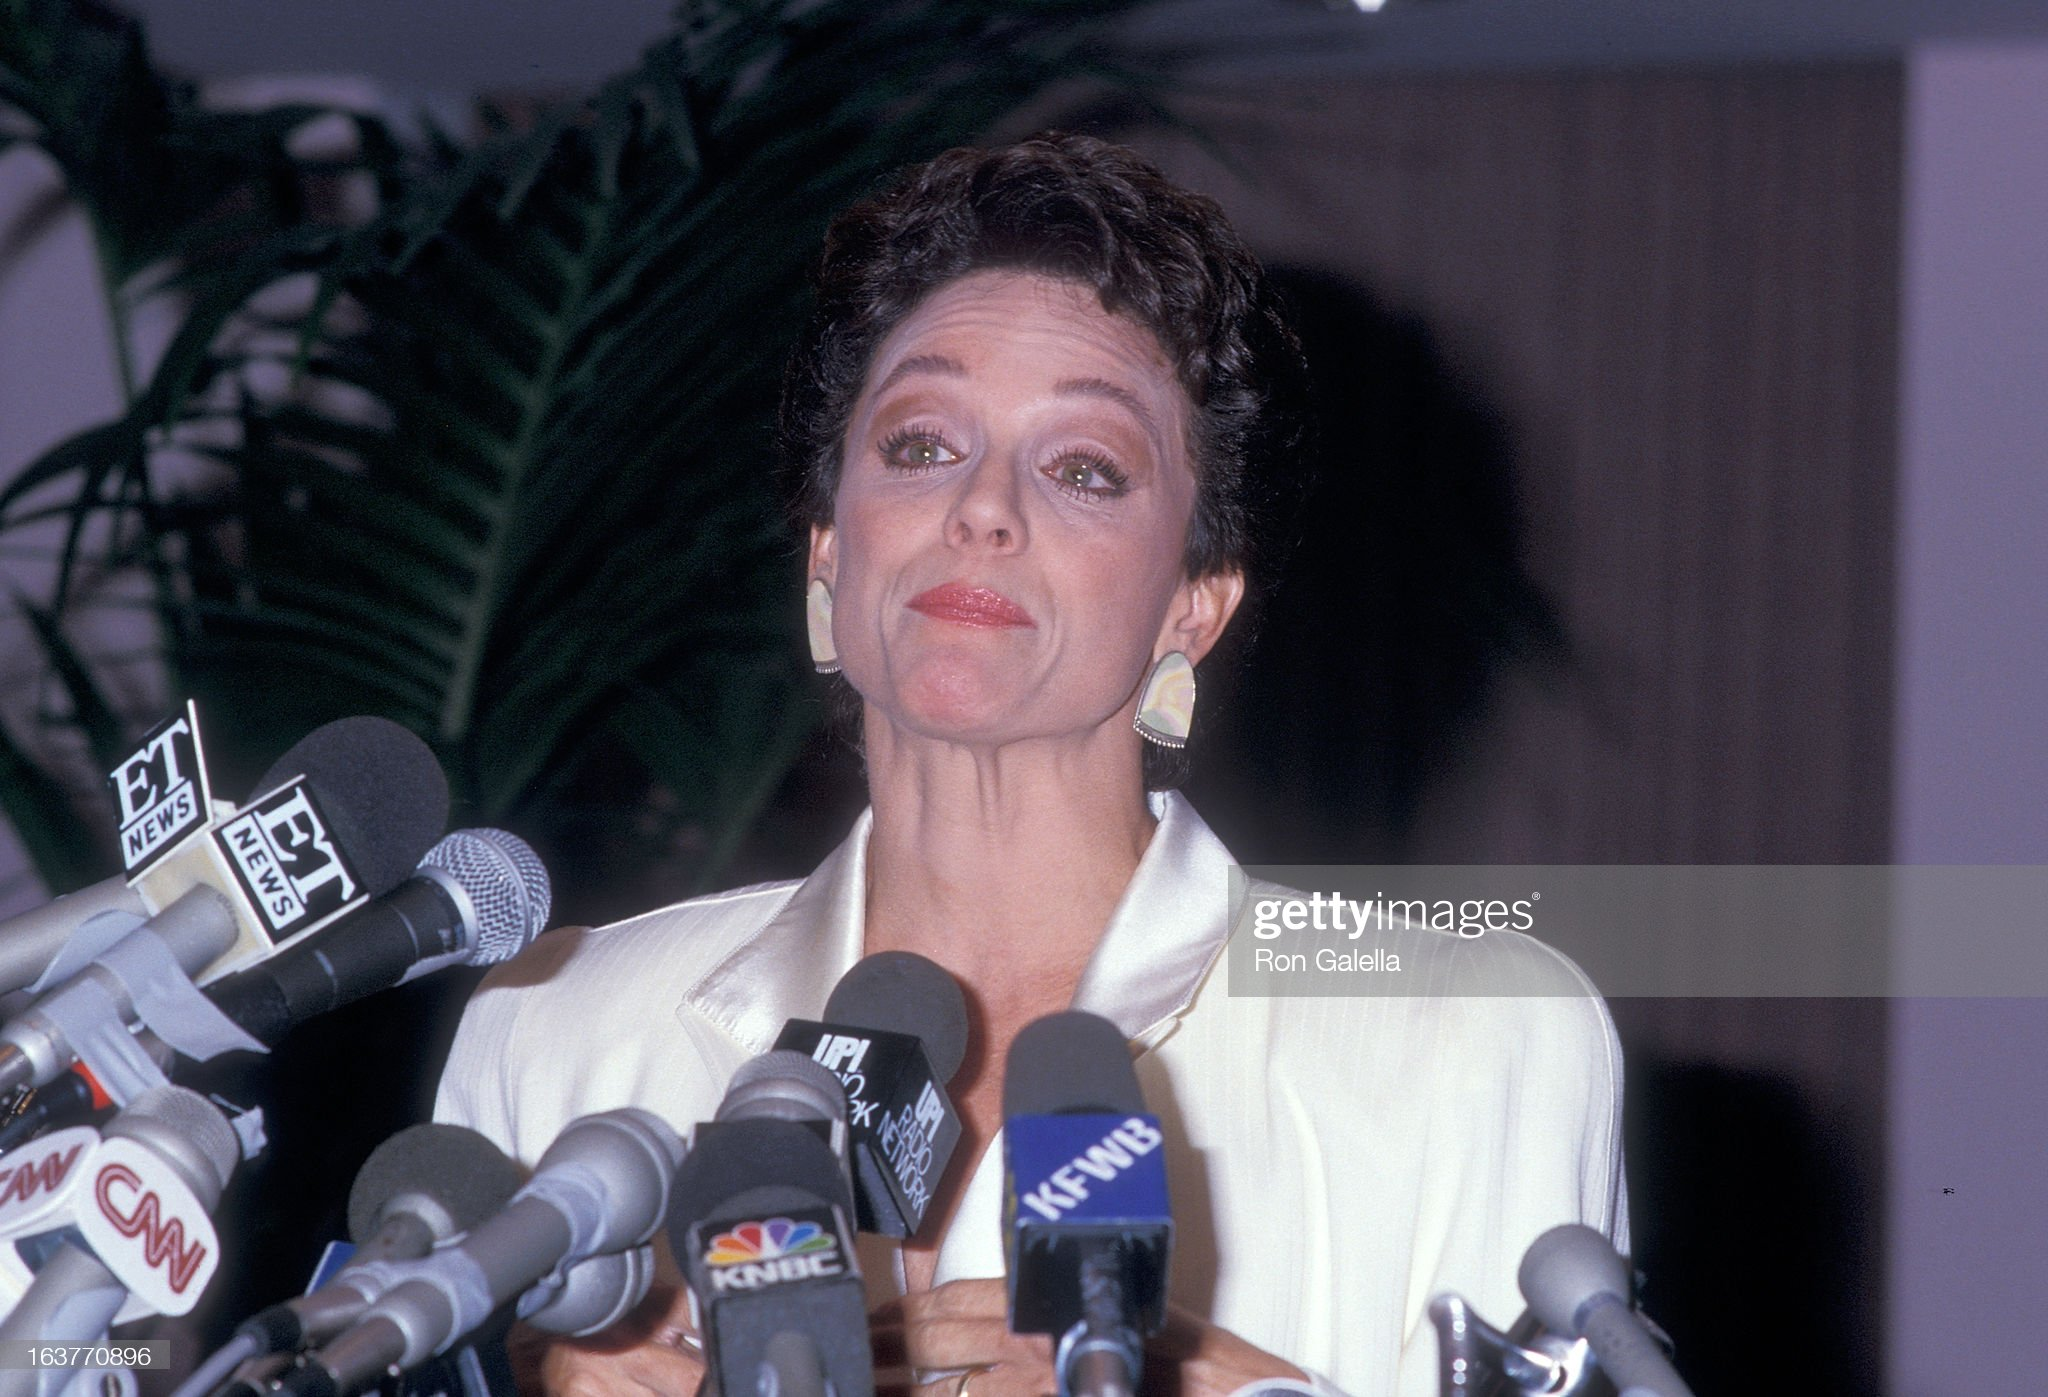 actress-valerie-harper-addresses-the-press-to-speak-about-being-fired-picture-id163770896